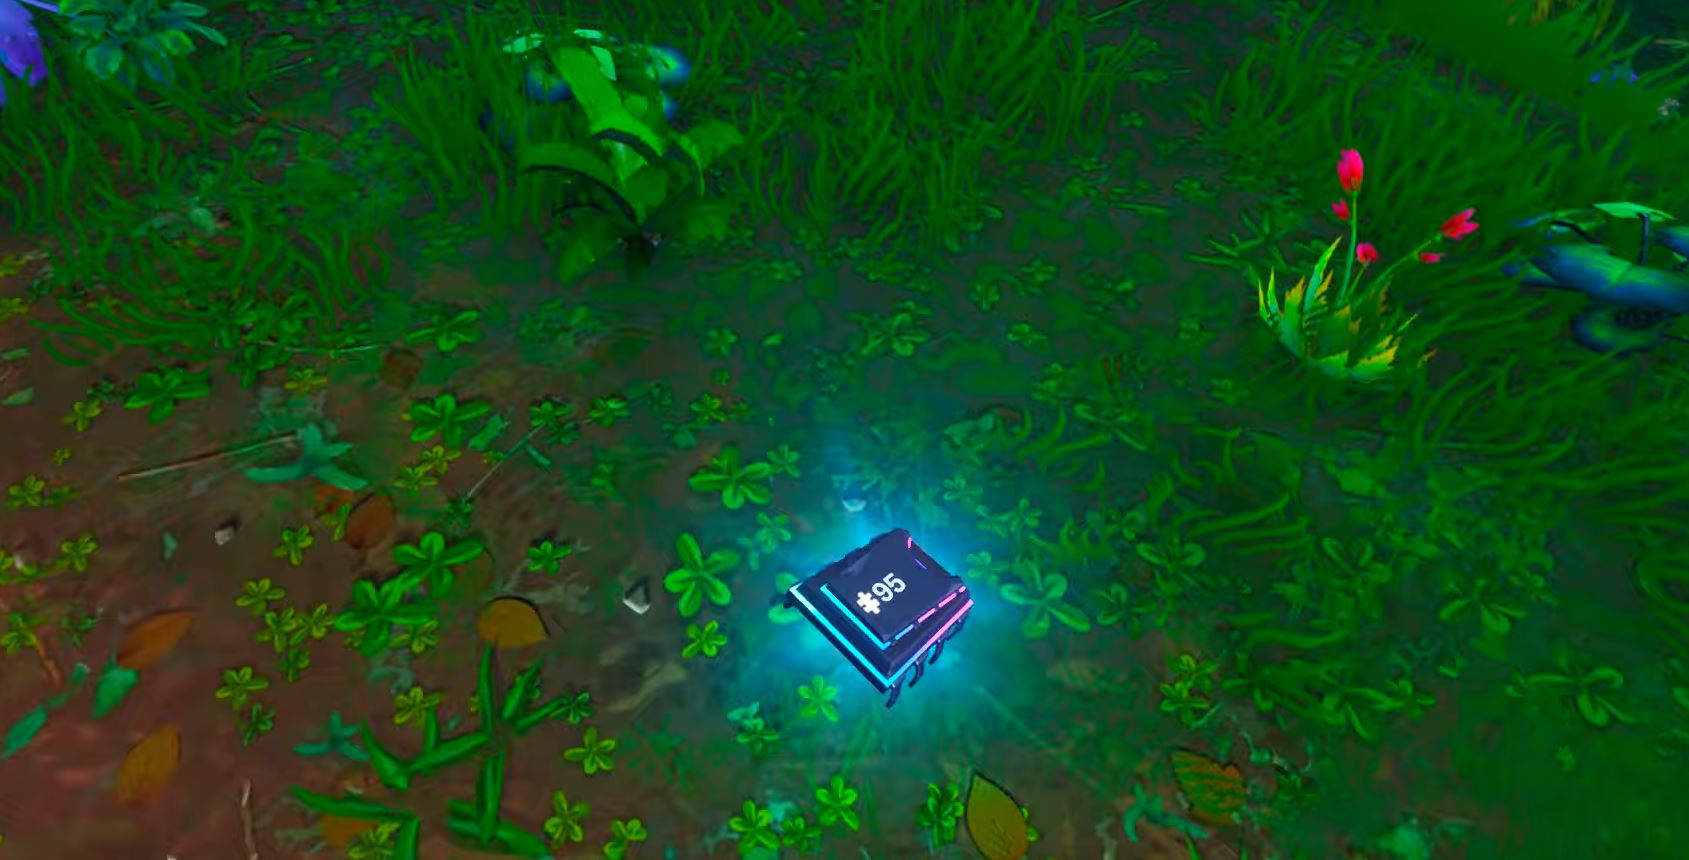 Fortbyte #95 - FOUND AT A SOLAR PANEL ARRAY IN THE JUNGLE Fortnite Location